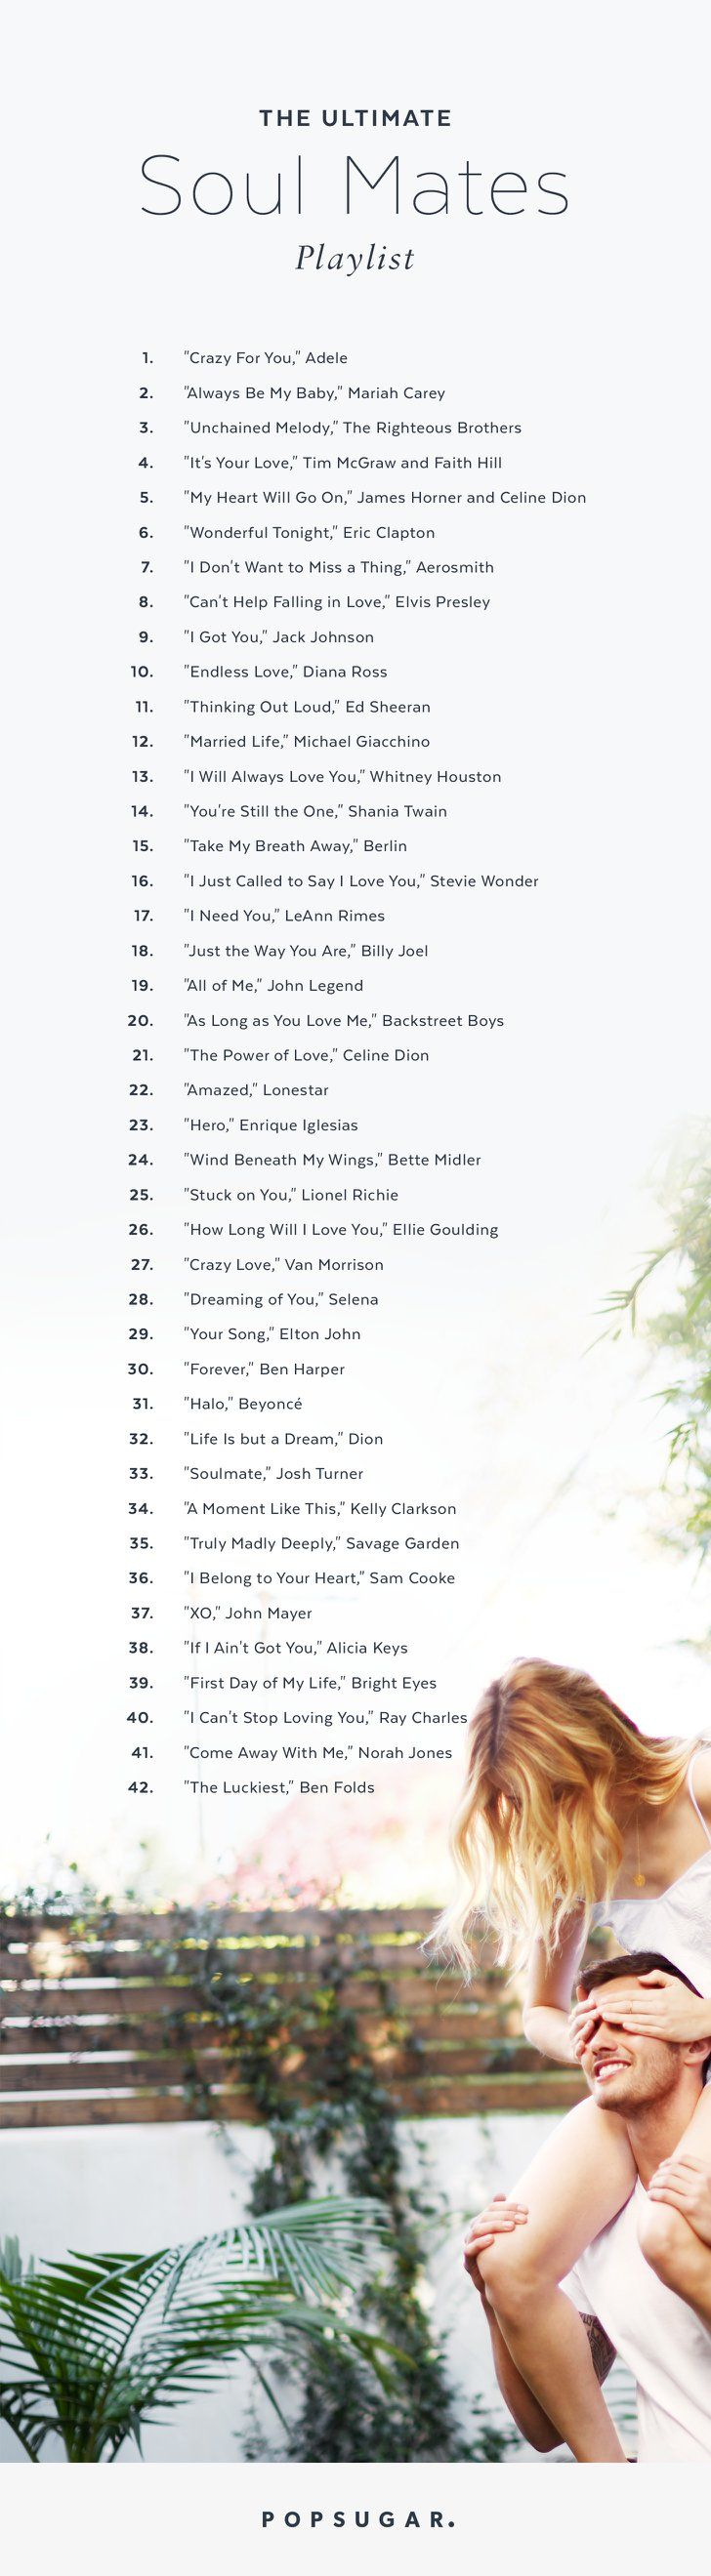 The Ultimate SoulMates PlayLIST of ROMANTIC Songs for the TWO + Making IT a LIFETIME Journey... = TOGETHER ForEVER More